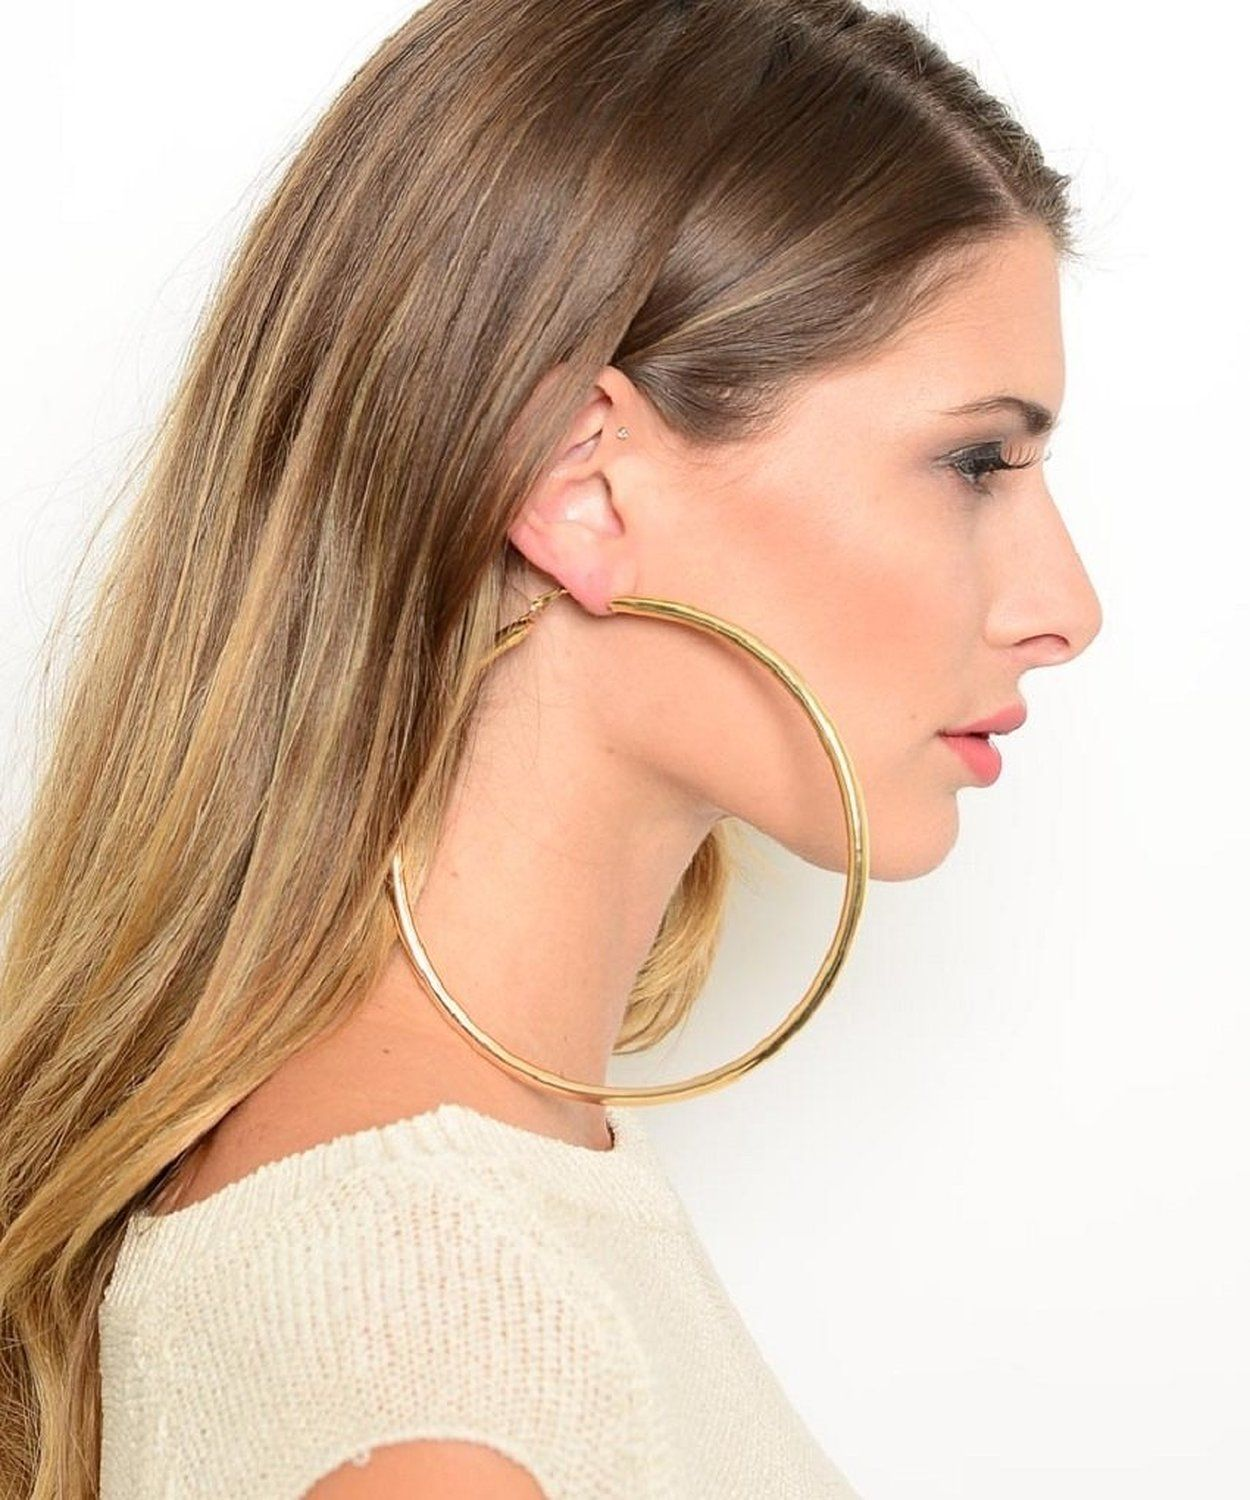 huge hoop earrings